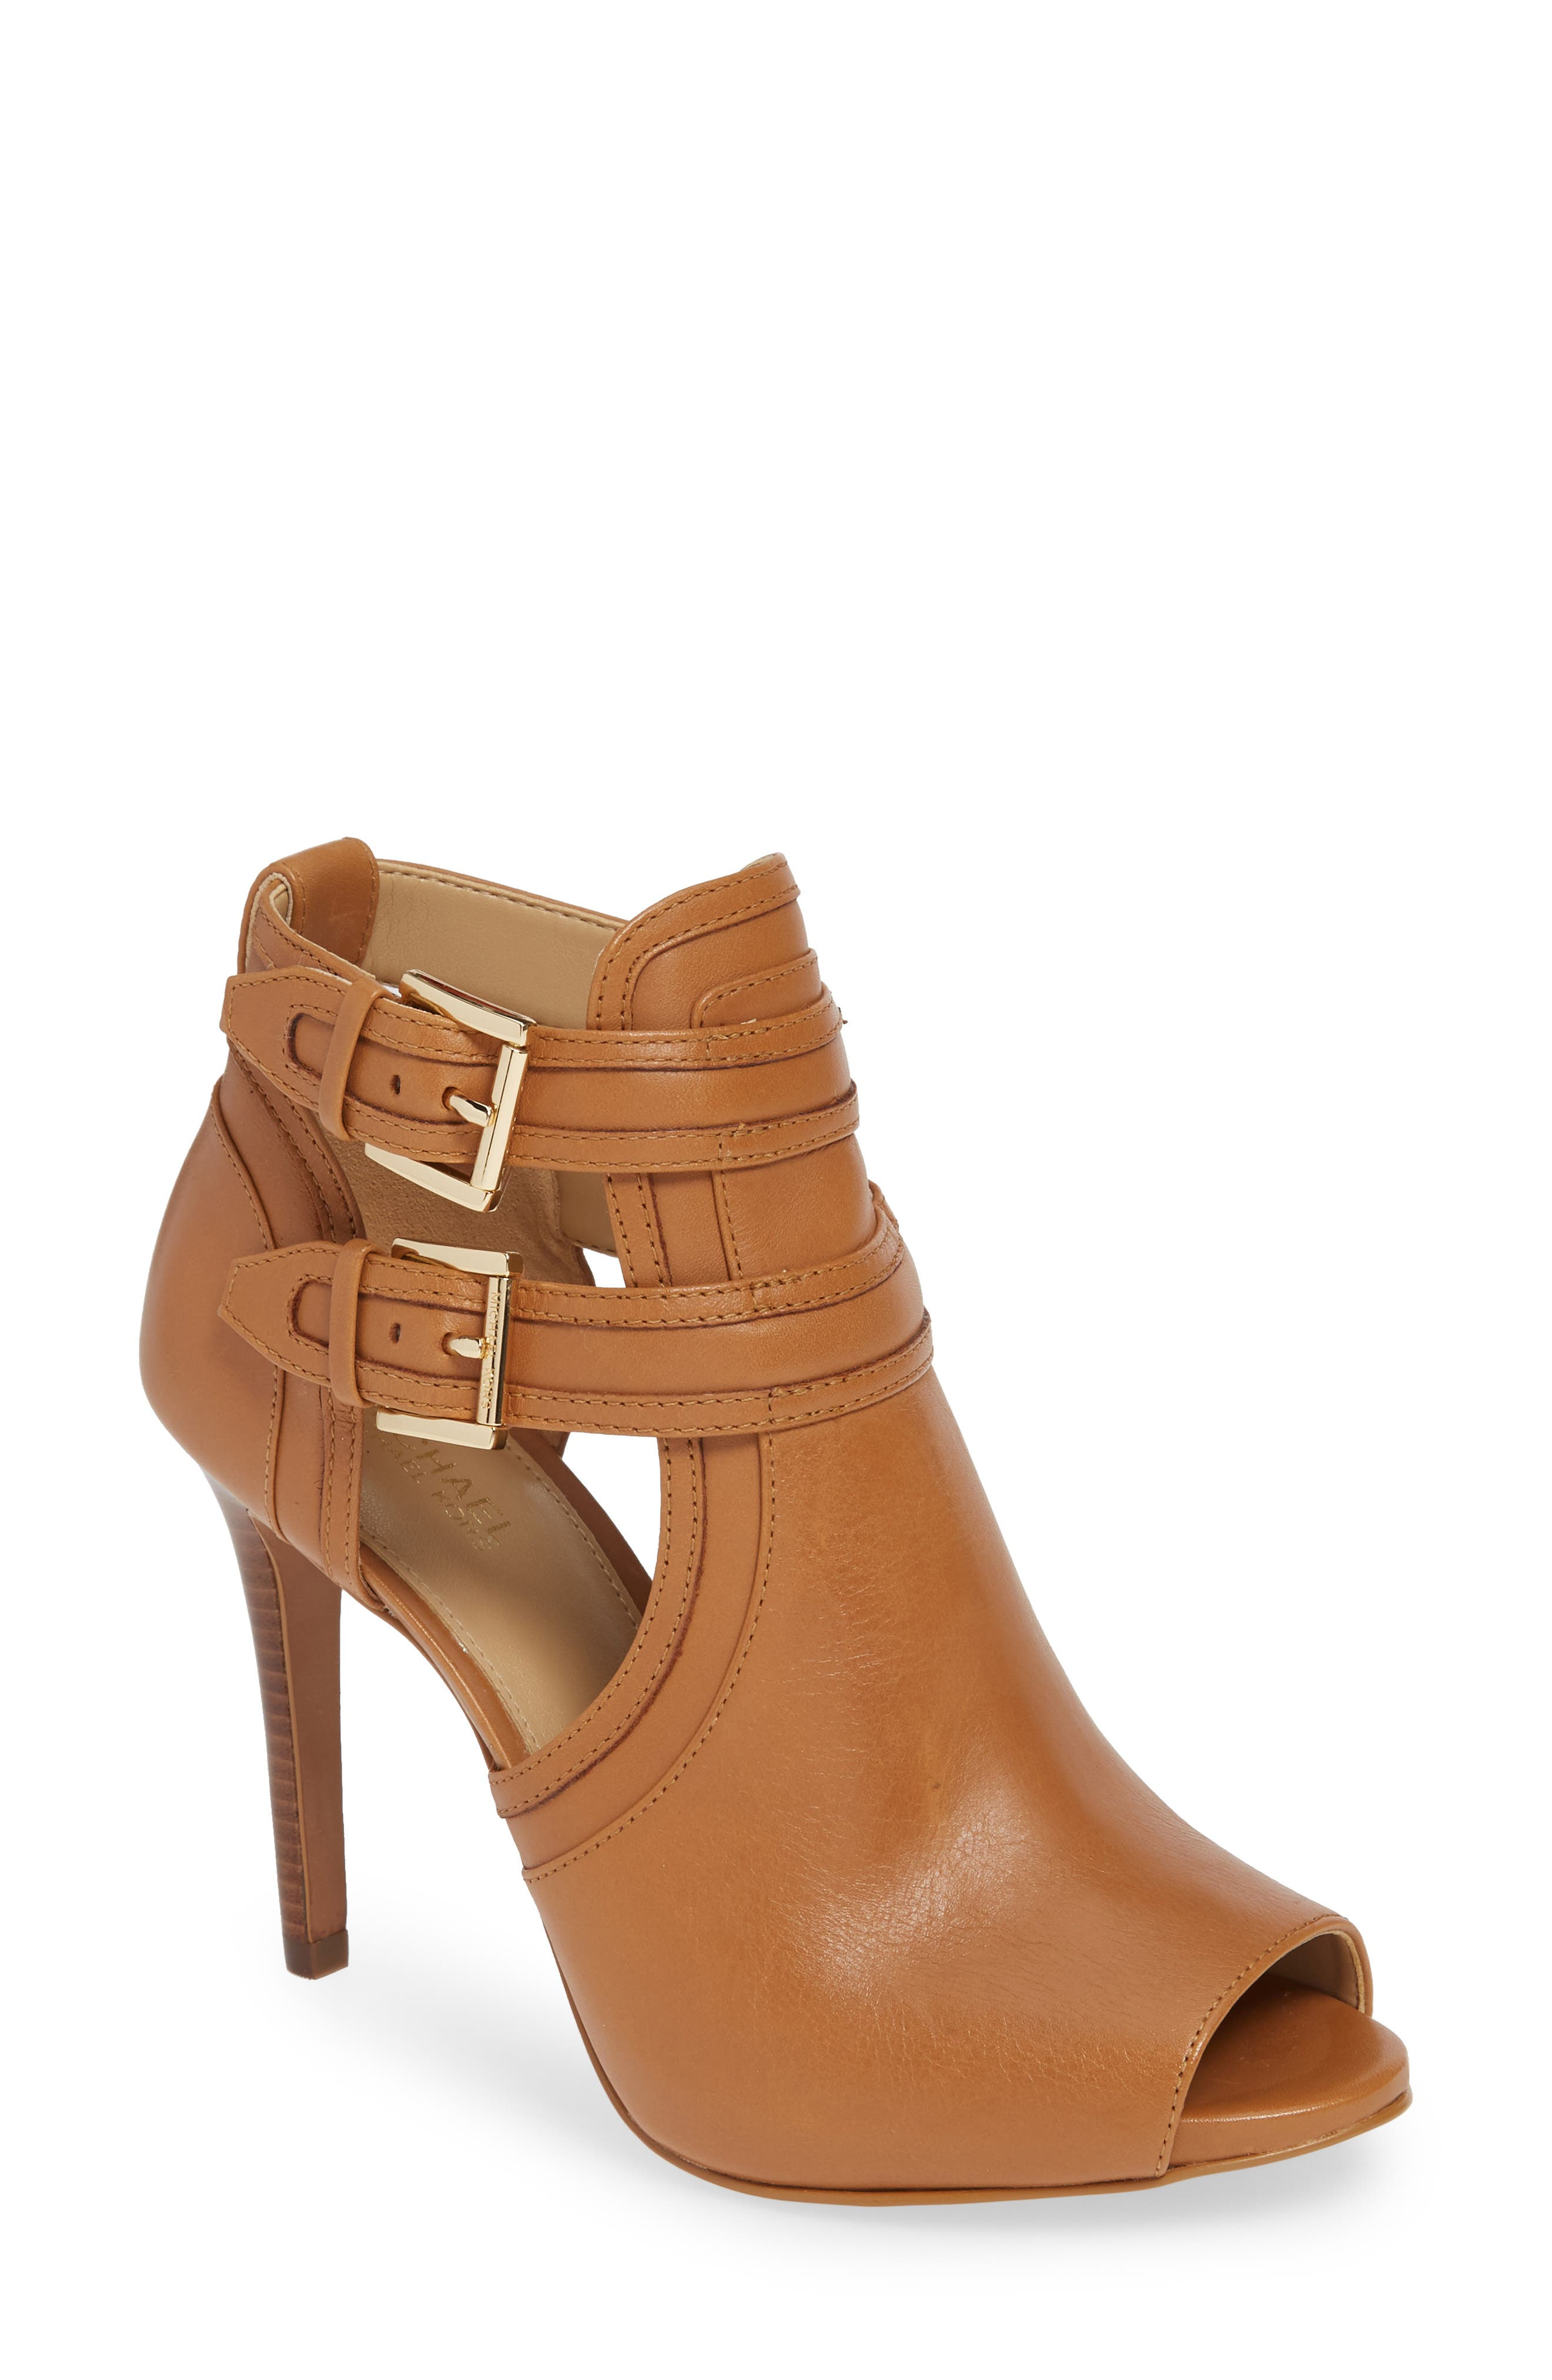 MICHAEL MICHAEL KORS Blaze Peep Toe Buckle Bootie, Main, color, ACORN LEATHER